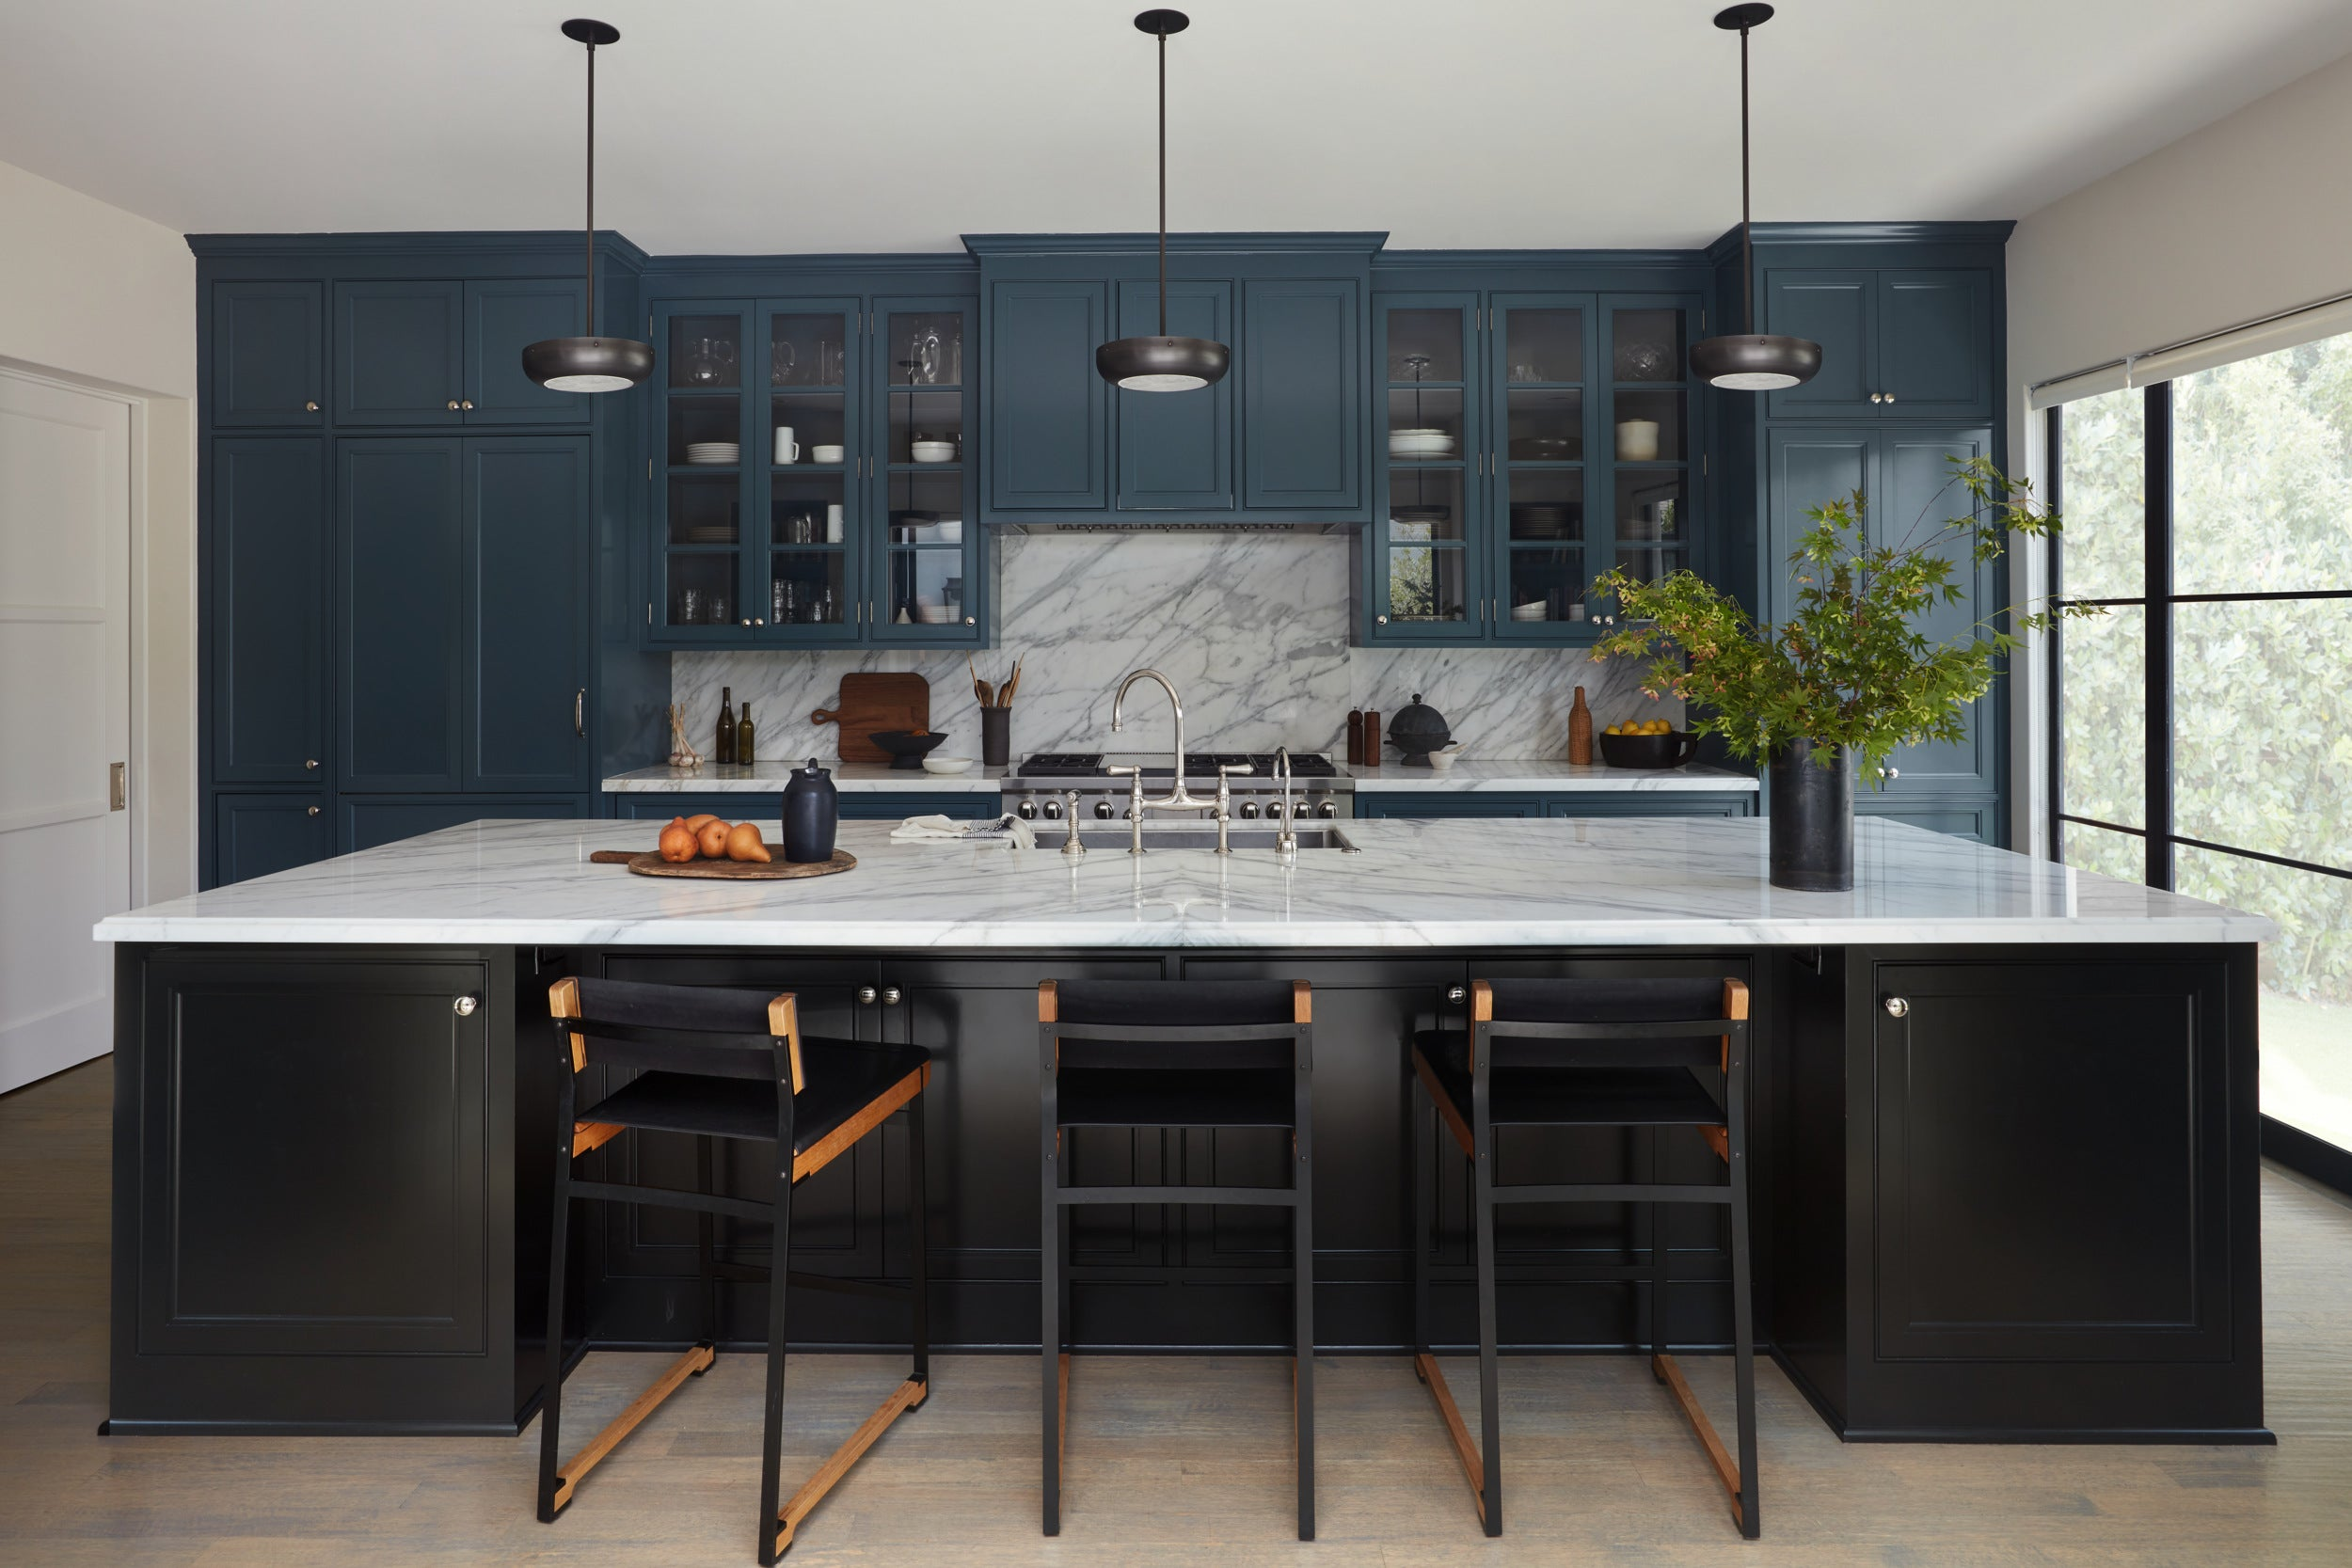 Studio Lifestyle's Westwood Project kitchen features RTO Lighting's small Lucille selenite pendant in oil rubbed bronze & brass.